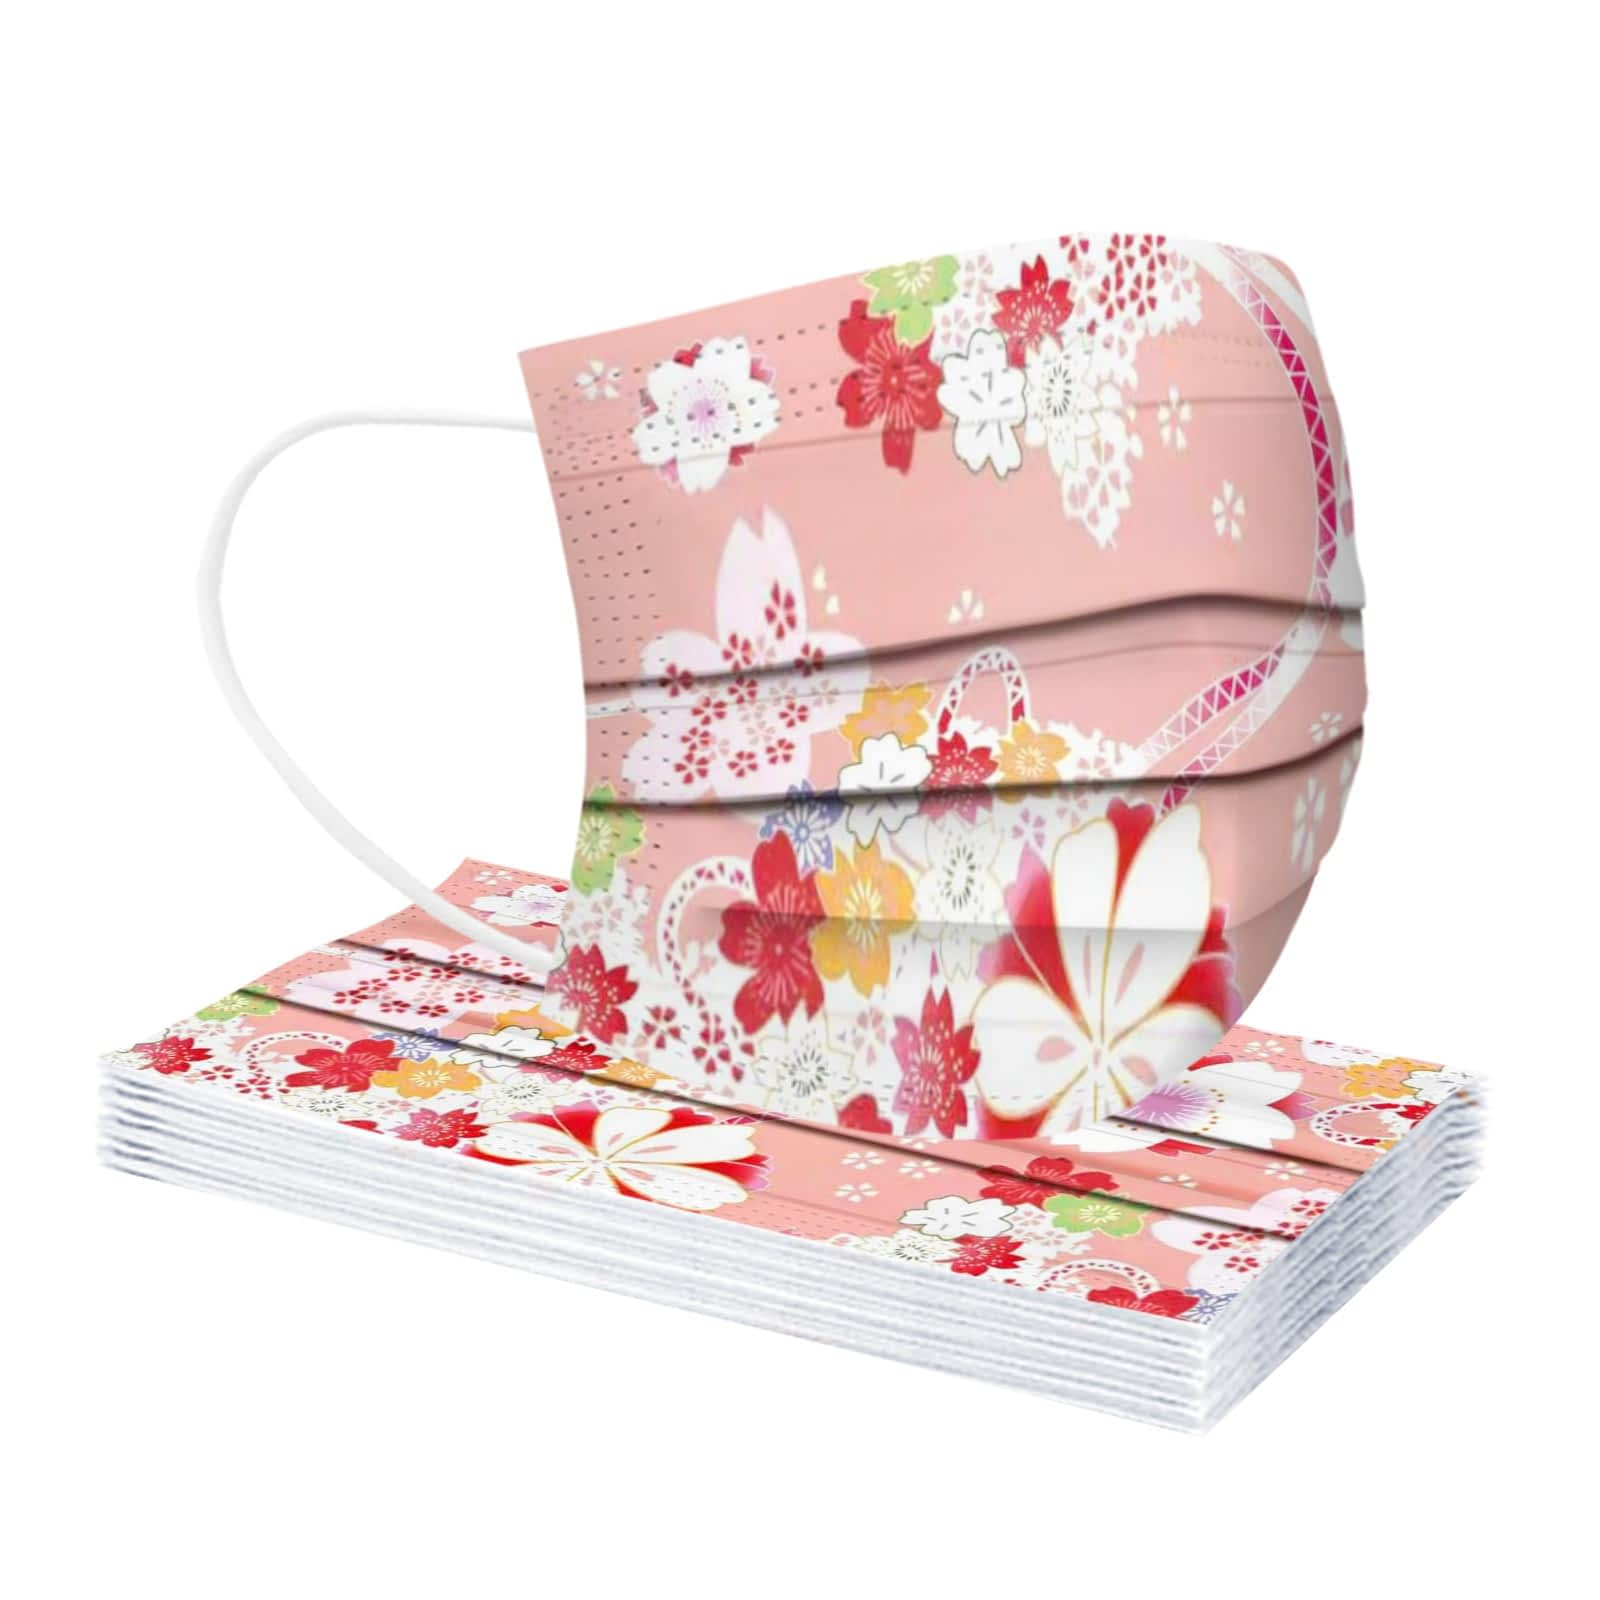 10PCS-21-Styles-Face-Mask-Adult-Mask-Disposable-Face-Mask-3Ply-Ear-Loop-Breathable-Fashion-Flower-7.jpg